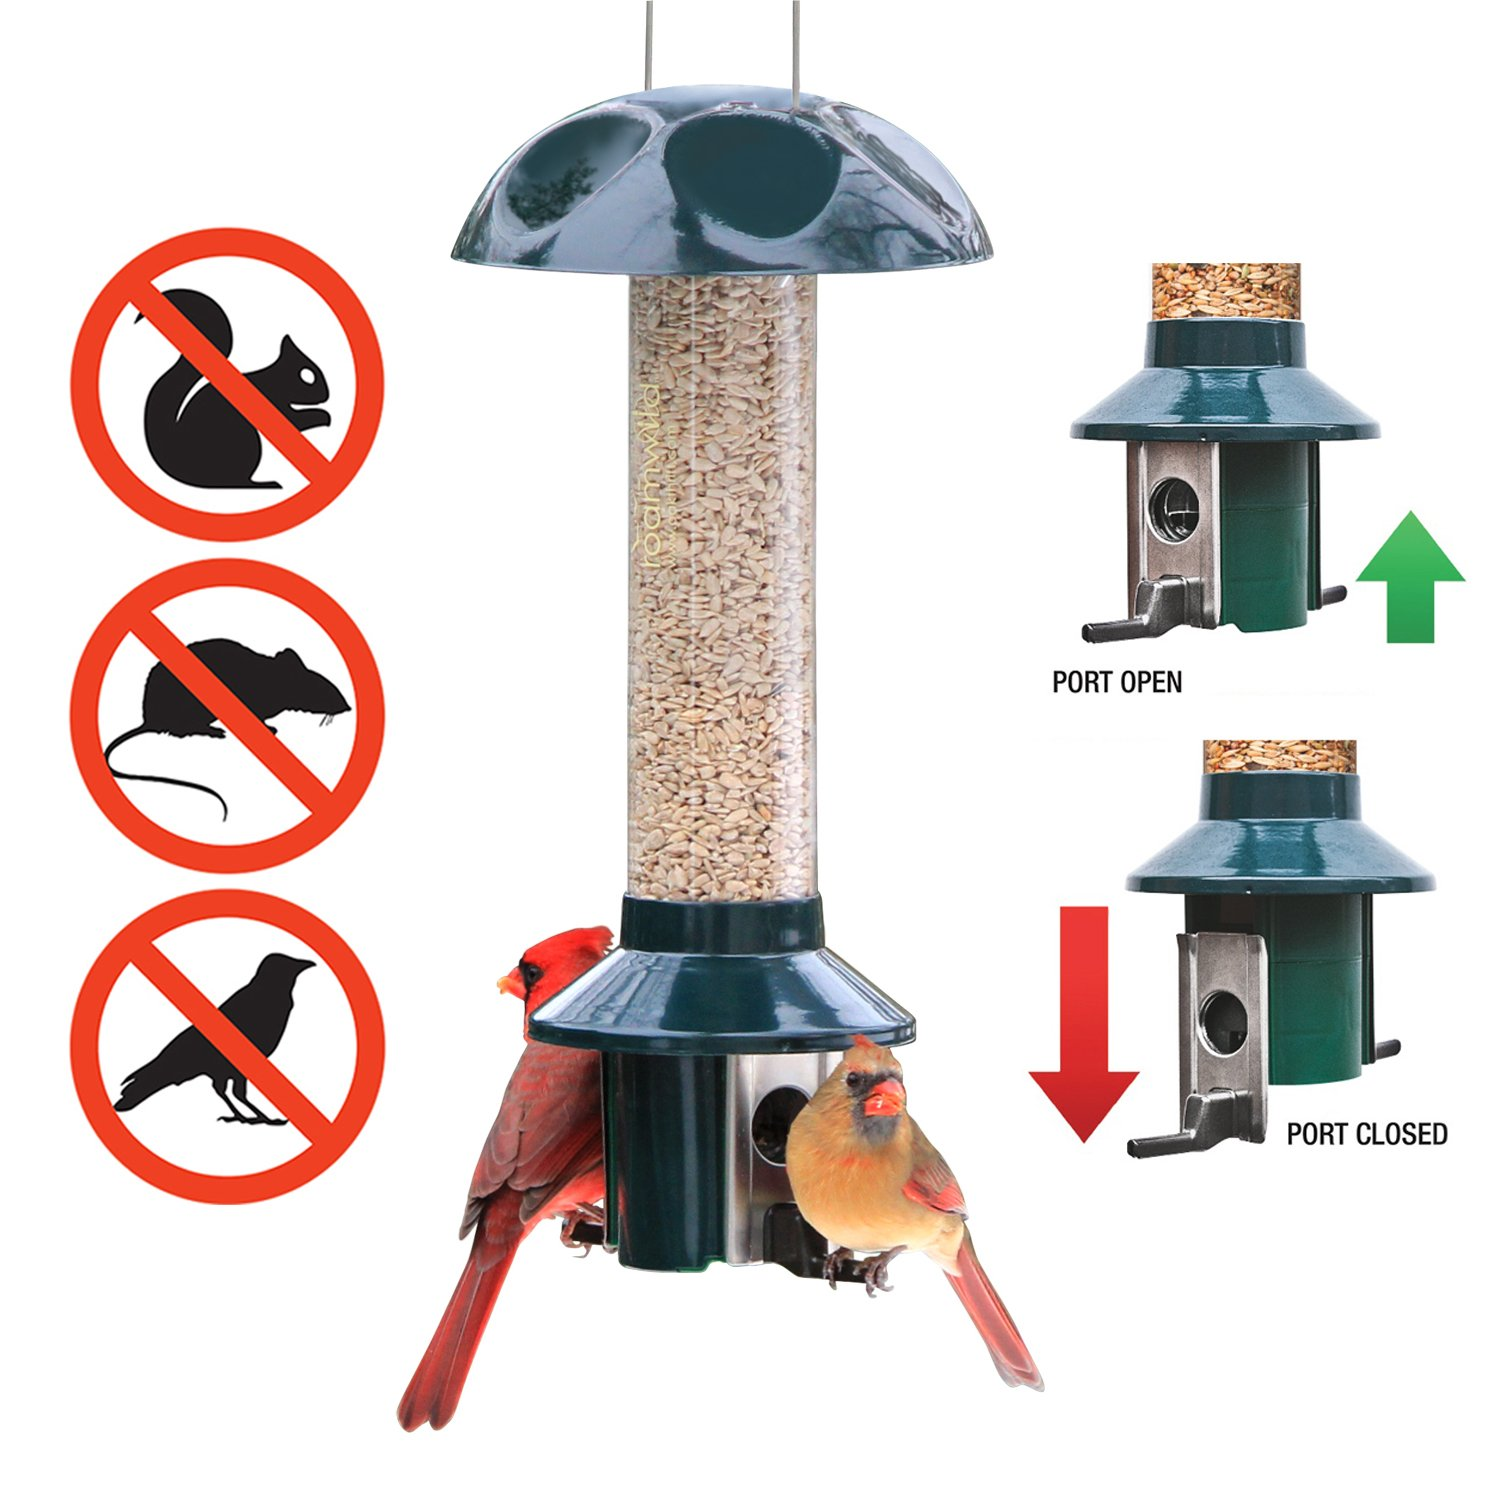 Roamwild PestOff Squirrel Proof Bird Feeder Mixed Seed Sunflower Heart Version by Roamwild